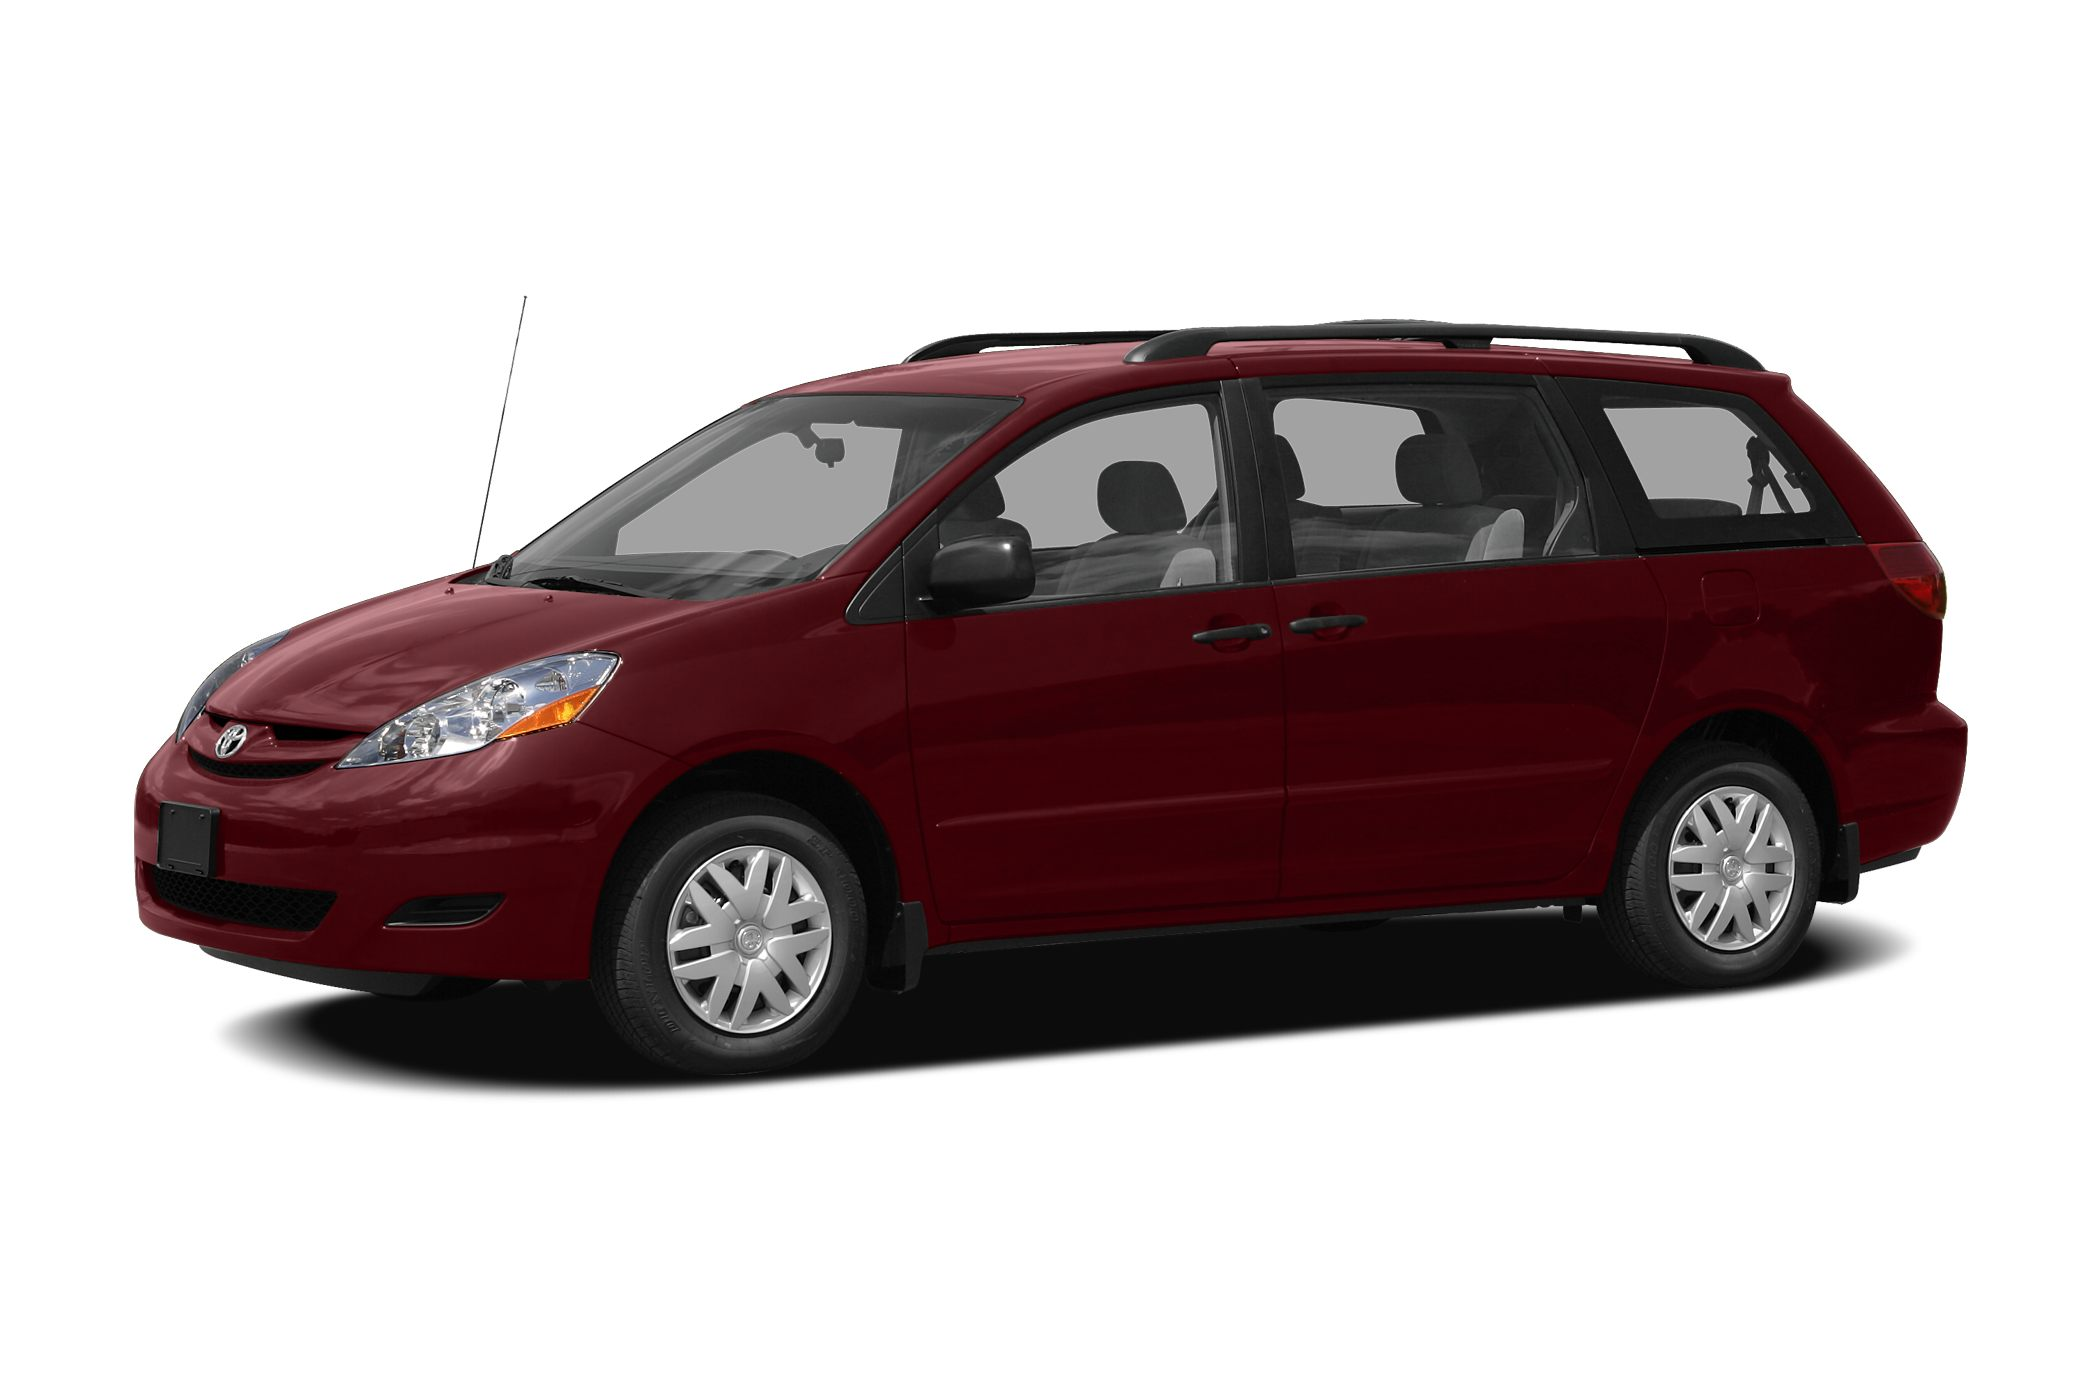 2008 Toyota Sienna XLE Minivan for sale in Lawrence for $13,700 with 134,429 miles